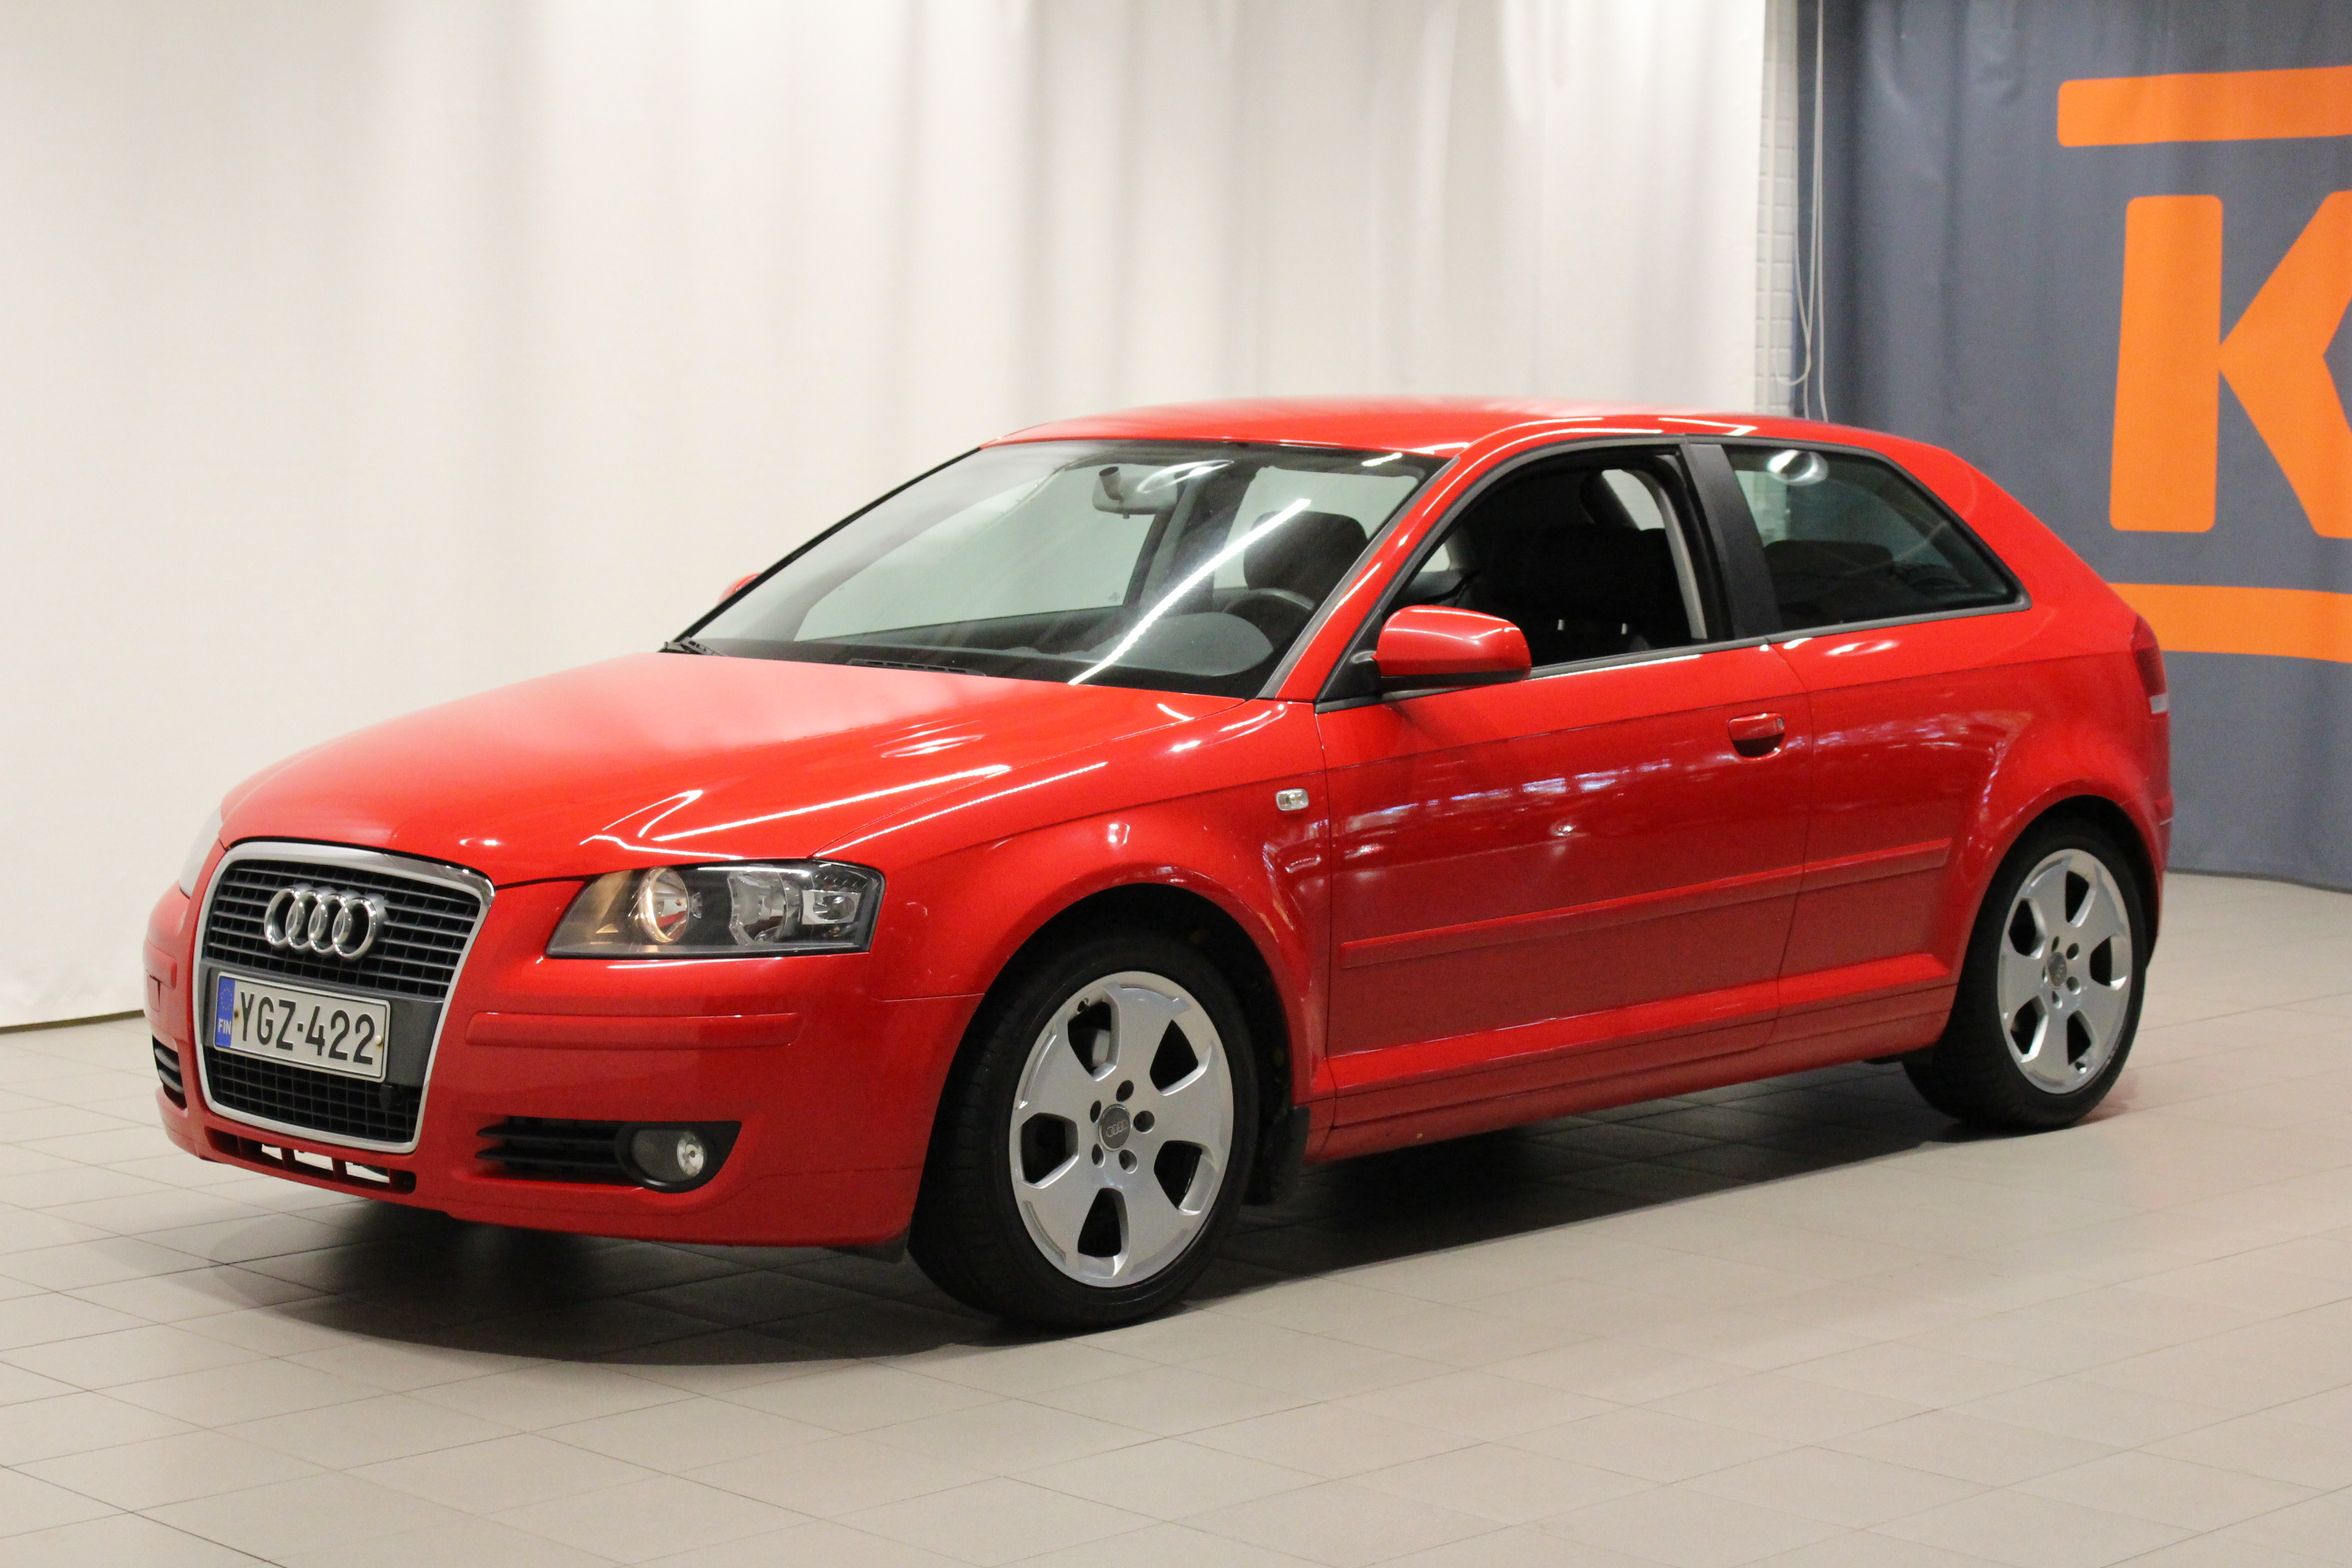 Audi A3 Compact Coupe Ambition 1,4 TFSI 92 kW Business